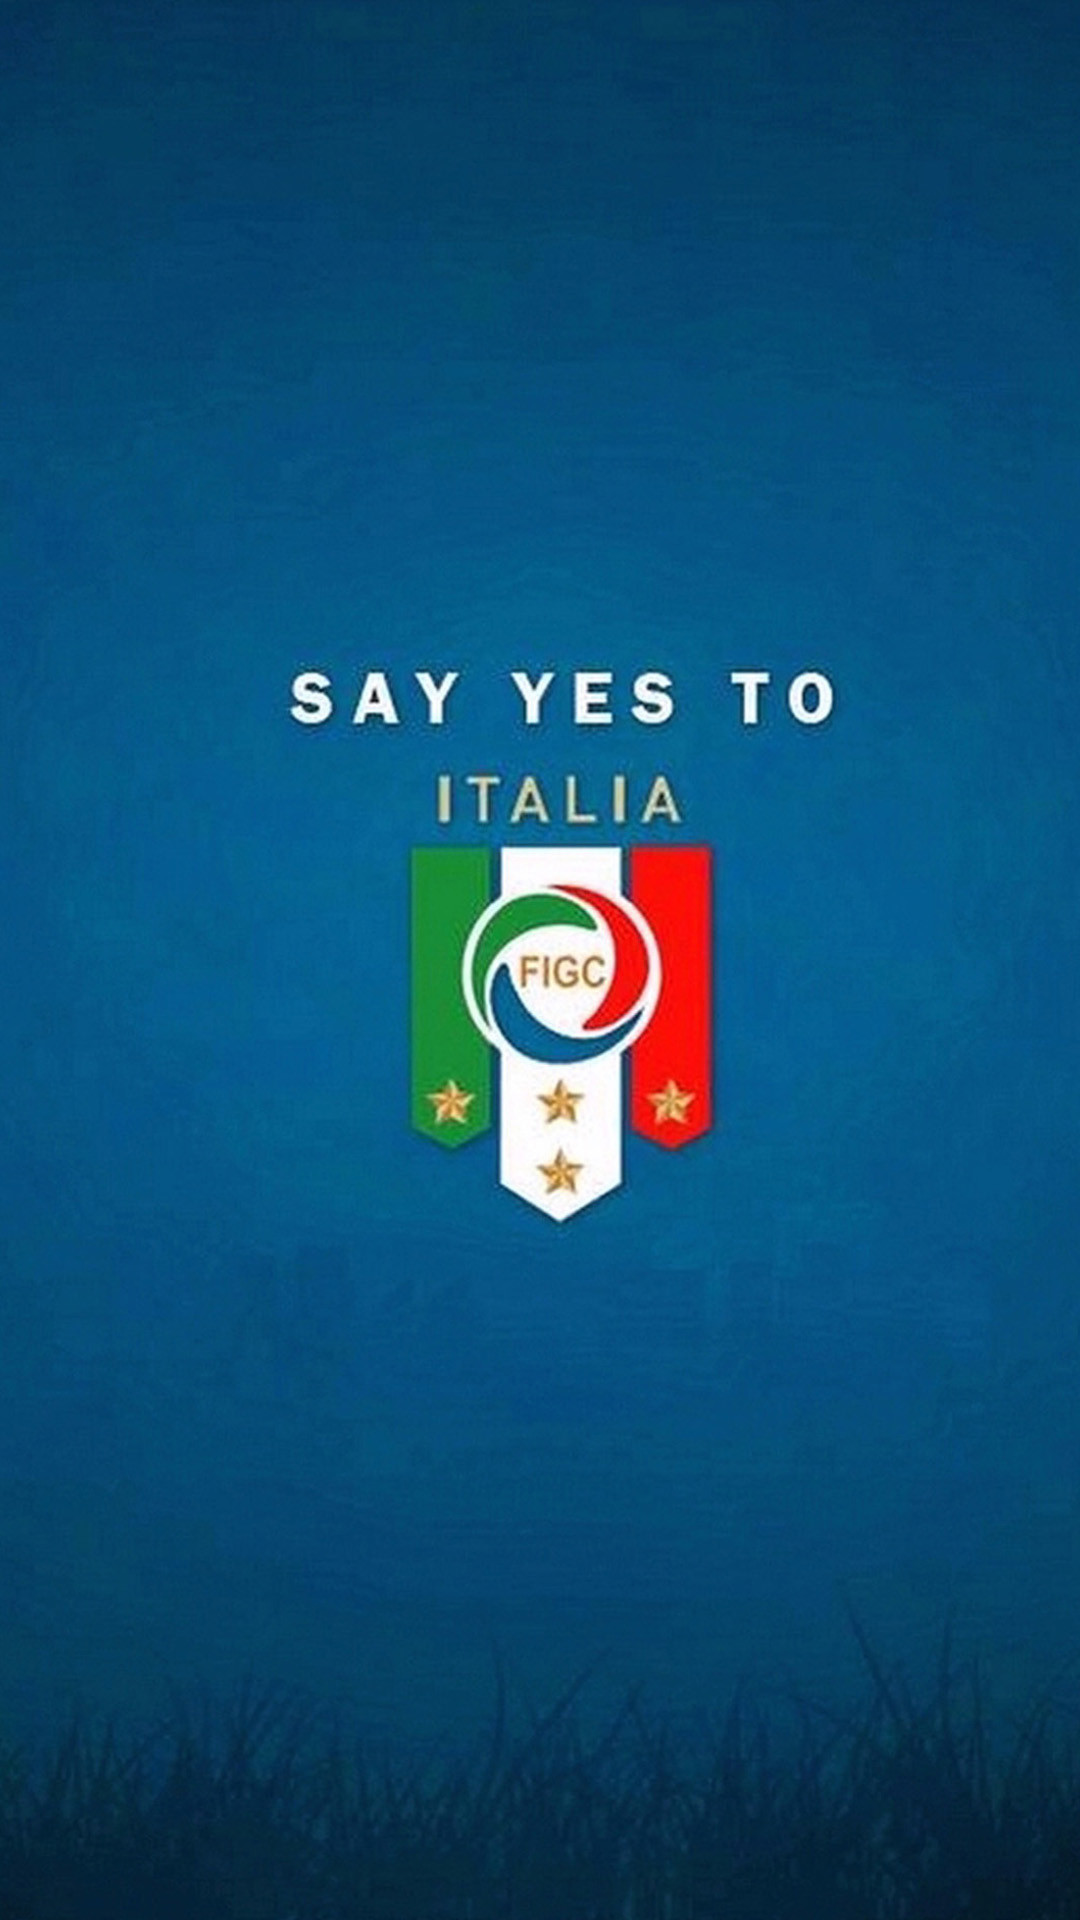 SAY YES TO ITALIA Htc One M8 – Best htc one wallpapers